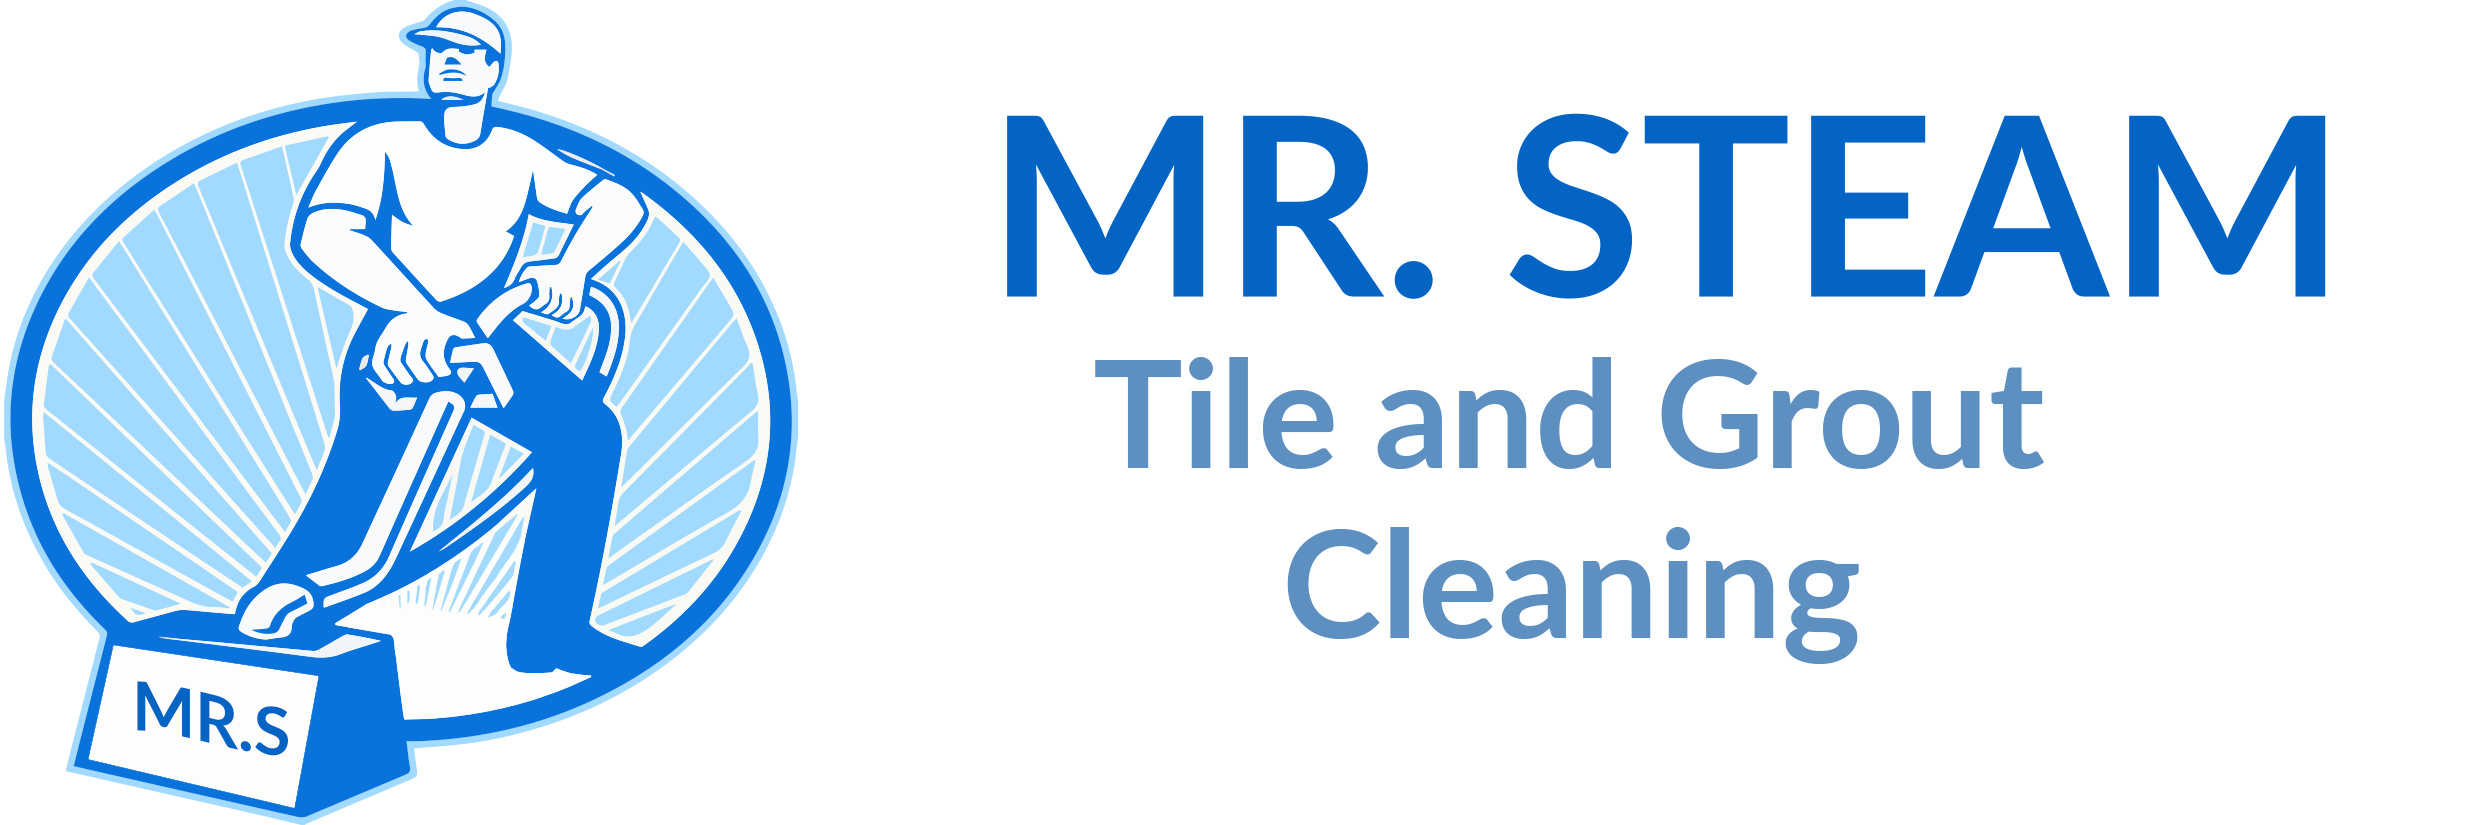 Mr.Steam Grout Cleaning